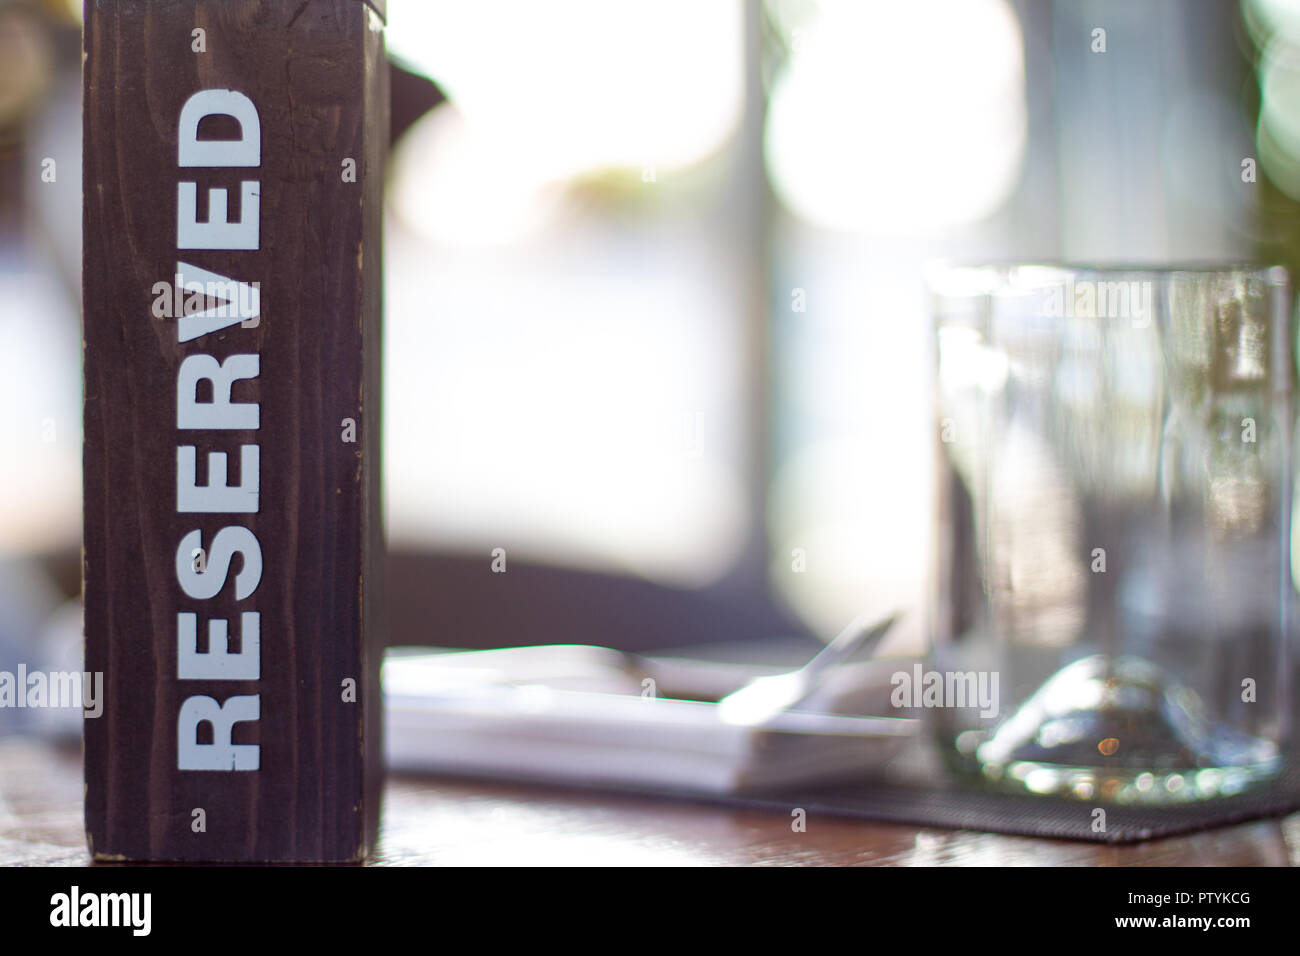 Reserved wooden Card Plate on the Table with Blurry background. Reservation Seat at restaurant. - leisure, people and service concept. - Stock Image